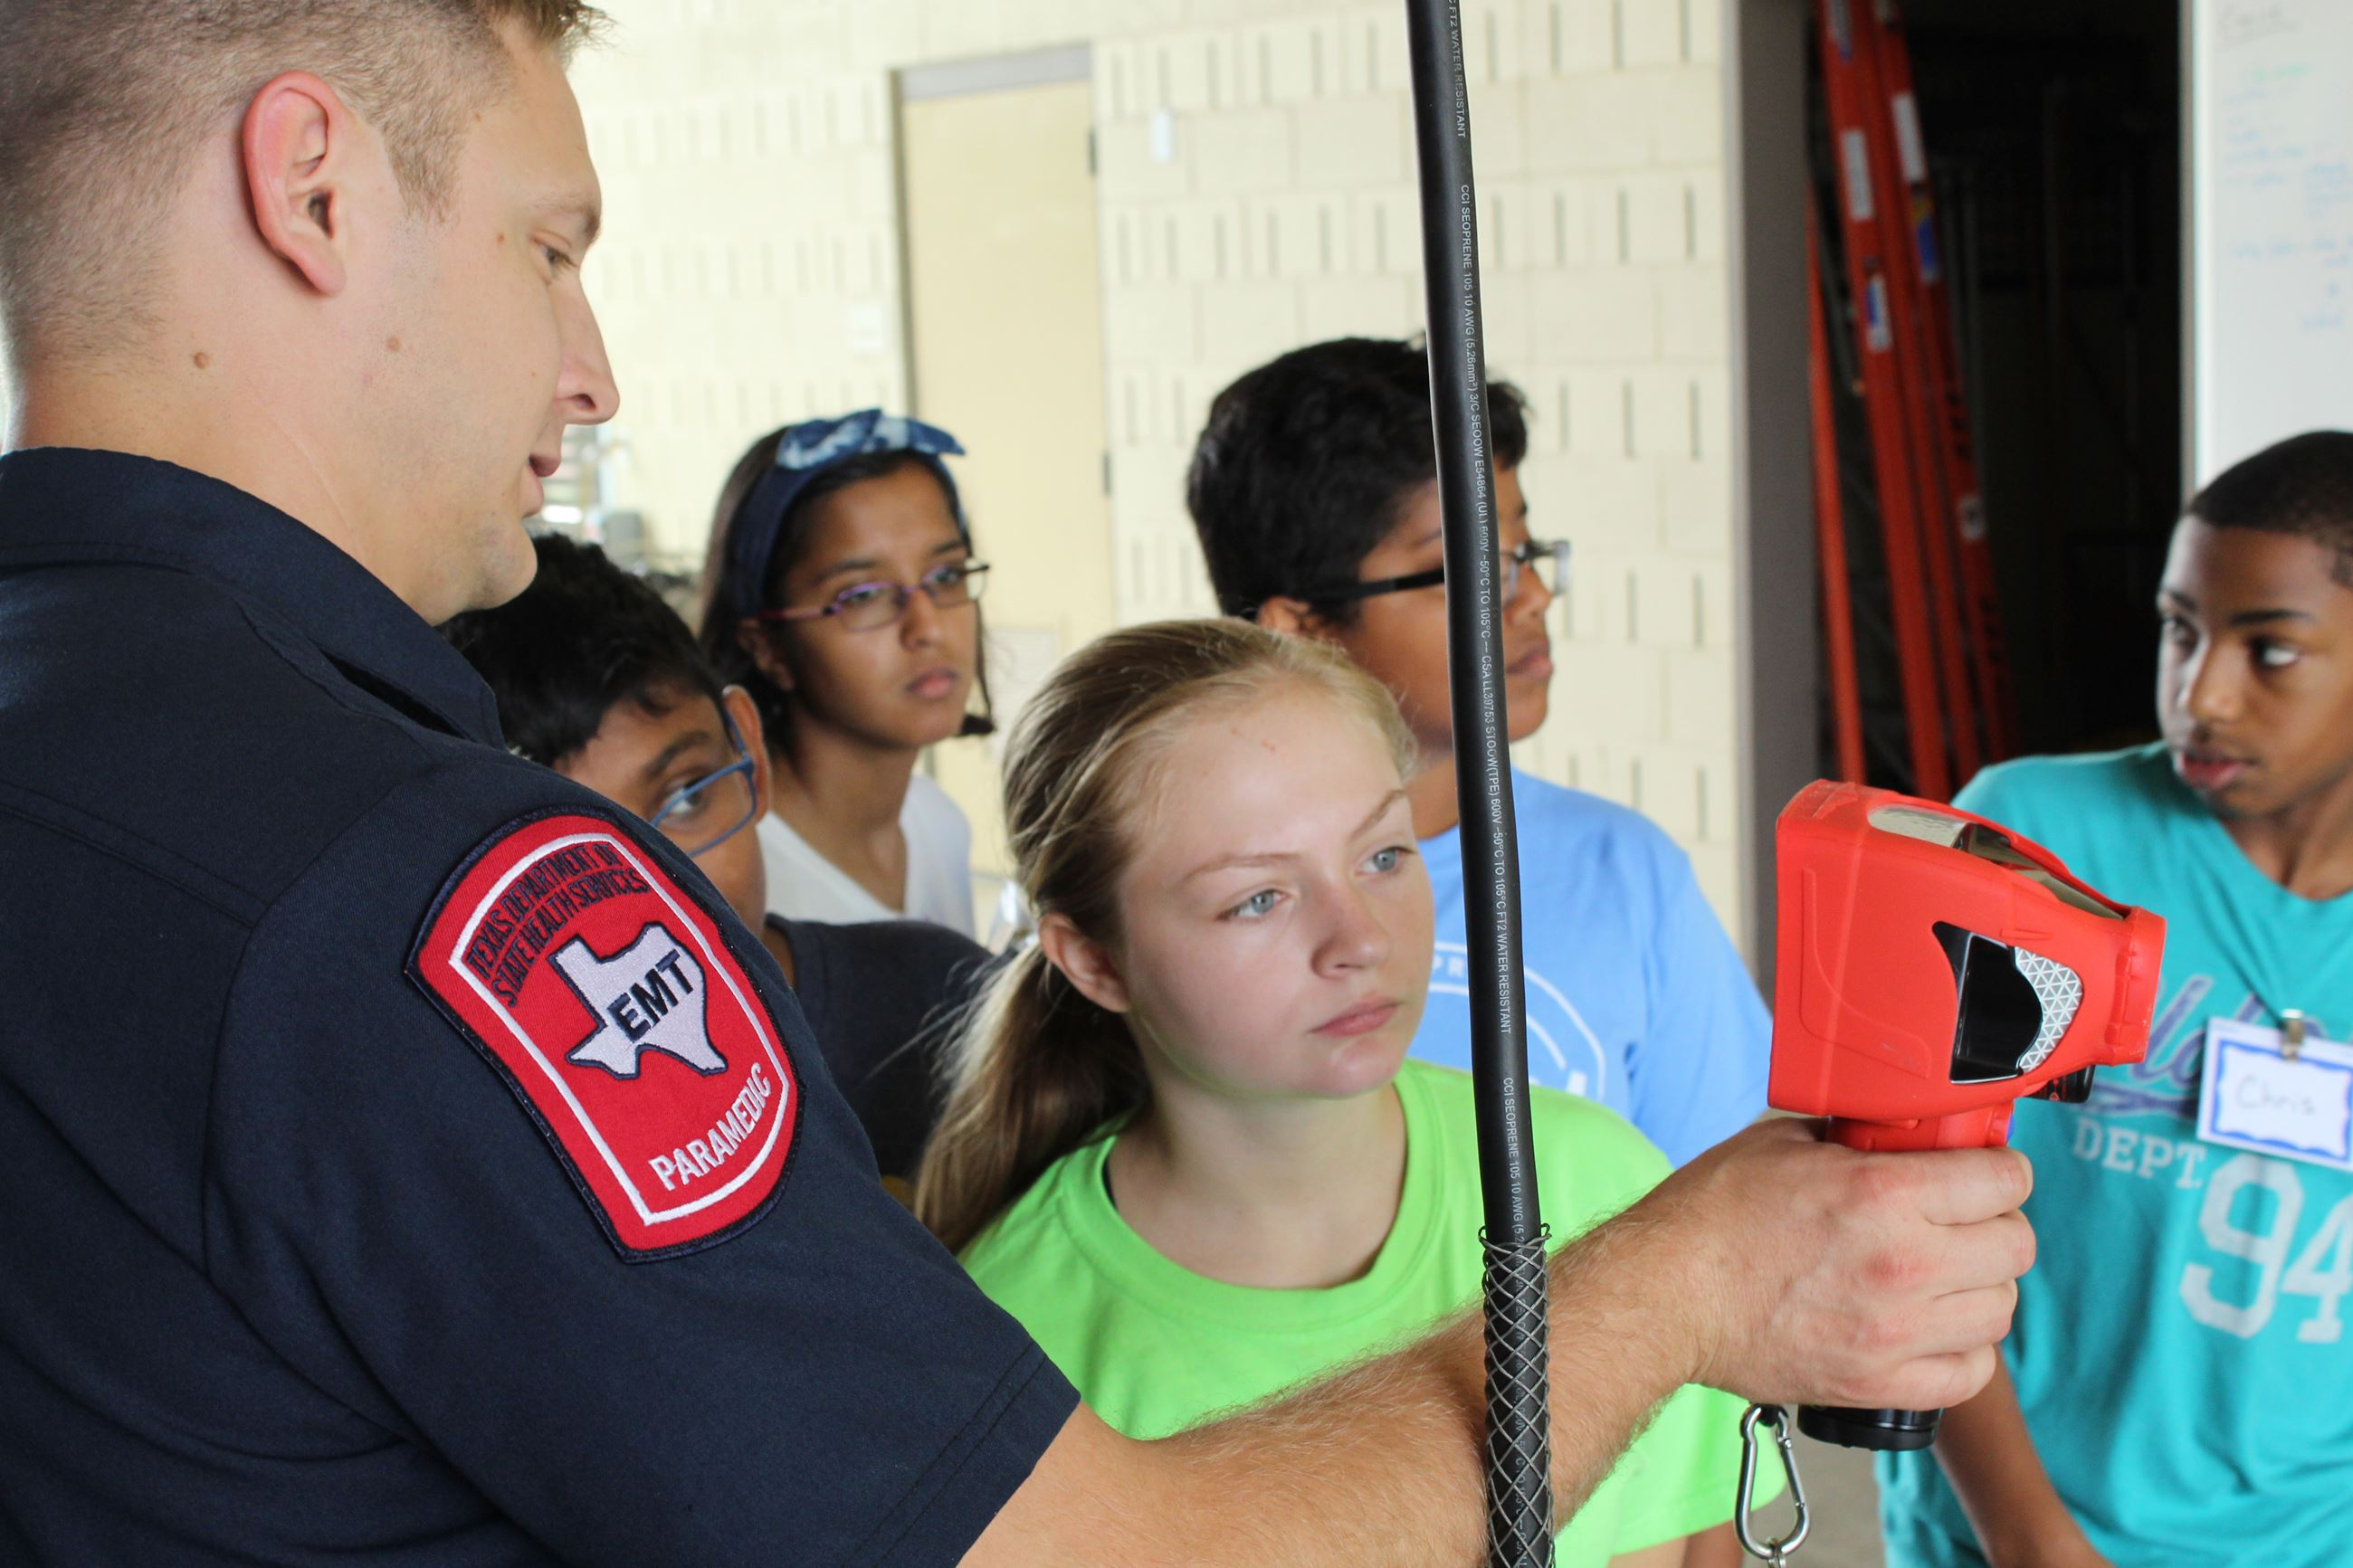 Allen firefighter gives equipment demonstration for onlooking students